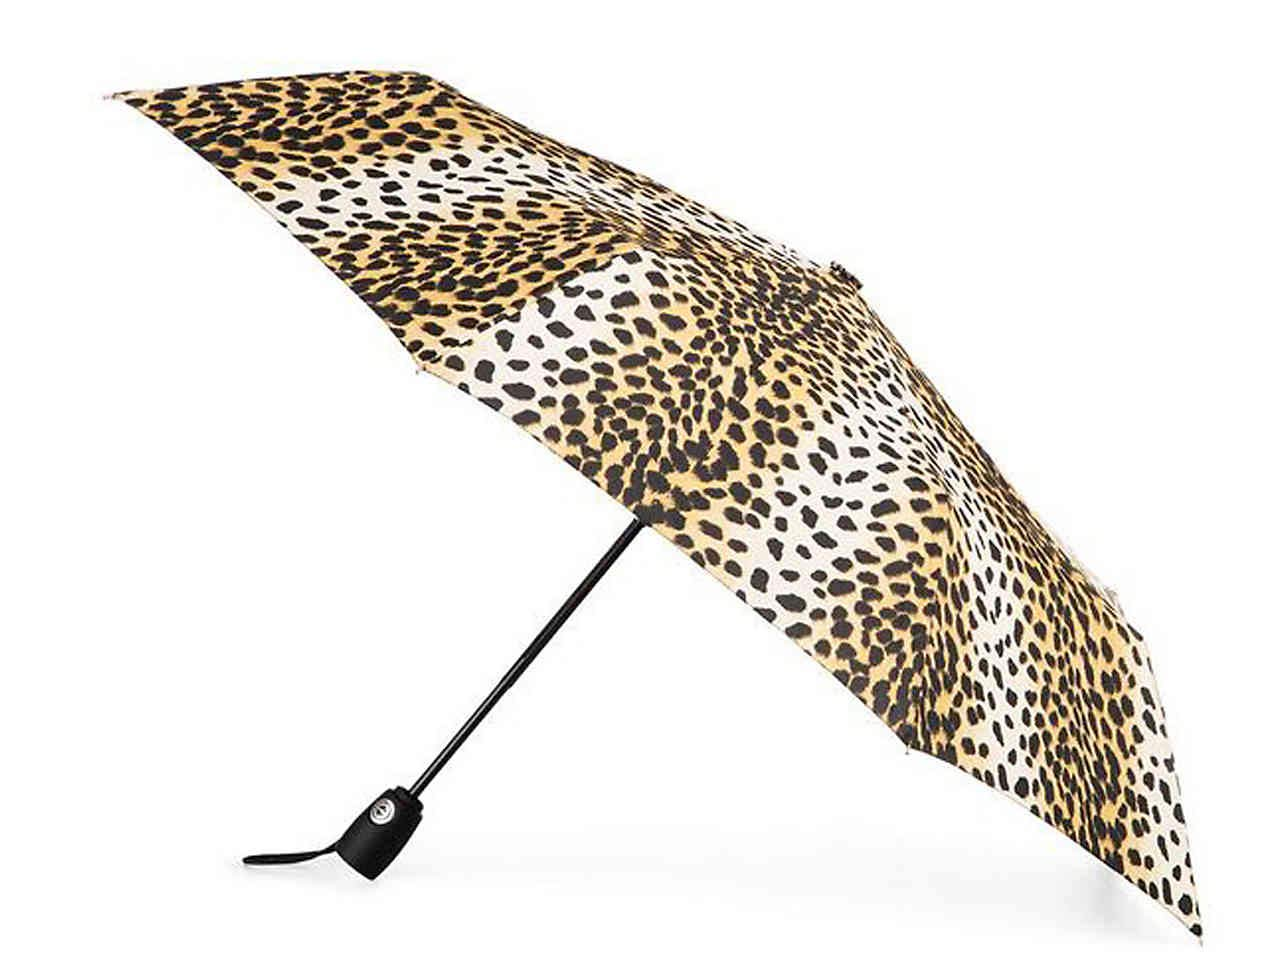 "Totes Auto Open and Auto Close Compact Umbrella With NeverWet Technology, 43"" Coverage"